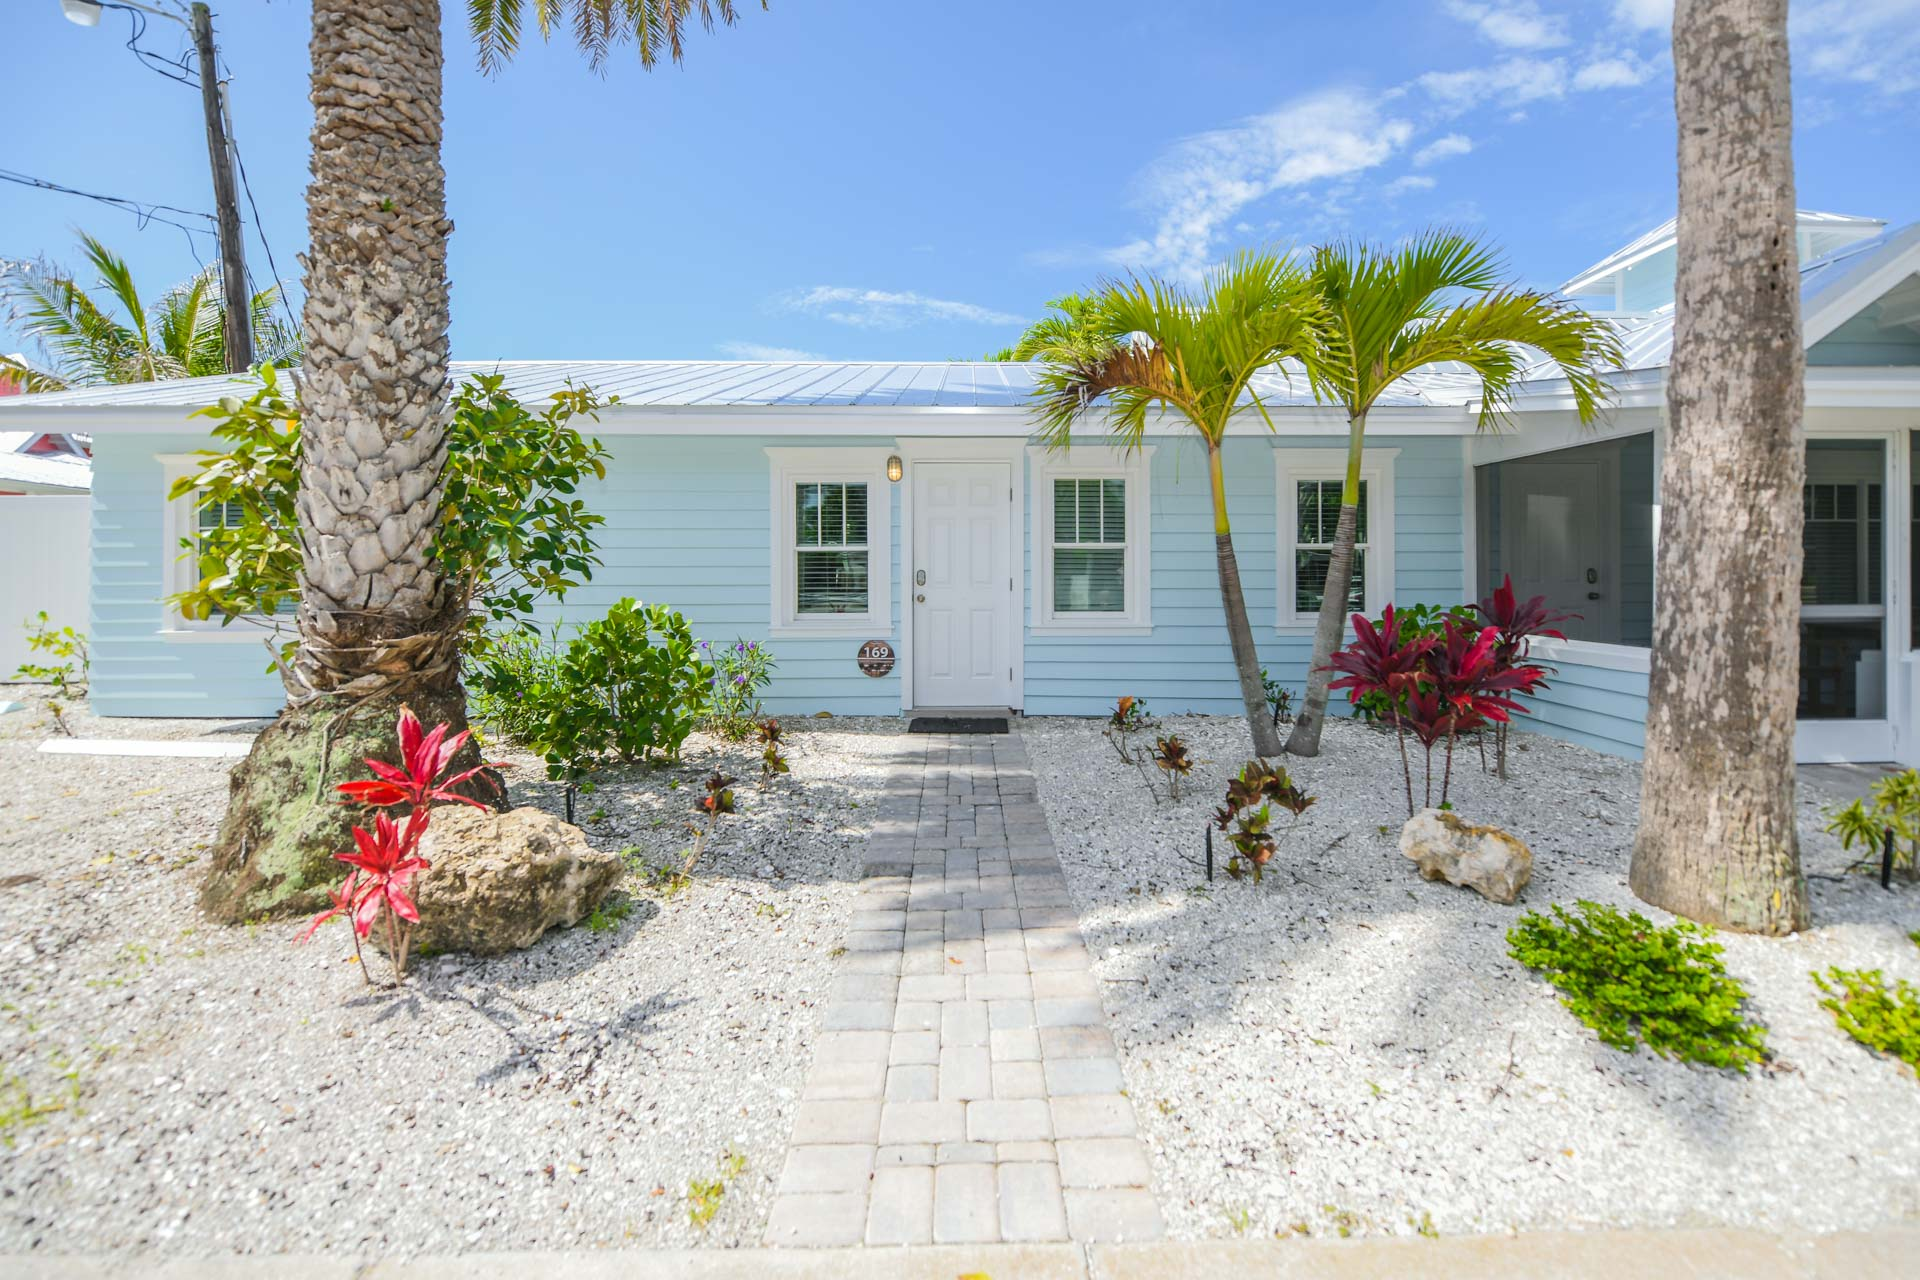 Treasure Island Bungalow Place To Stay On Vacation 1 Bedroom 1 Full